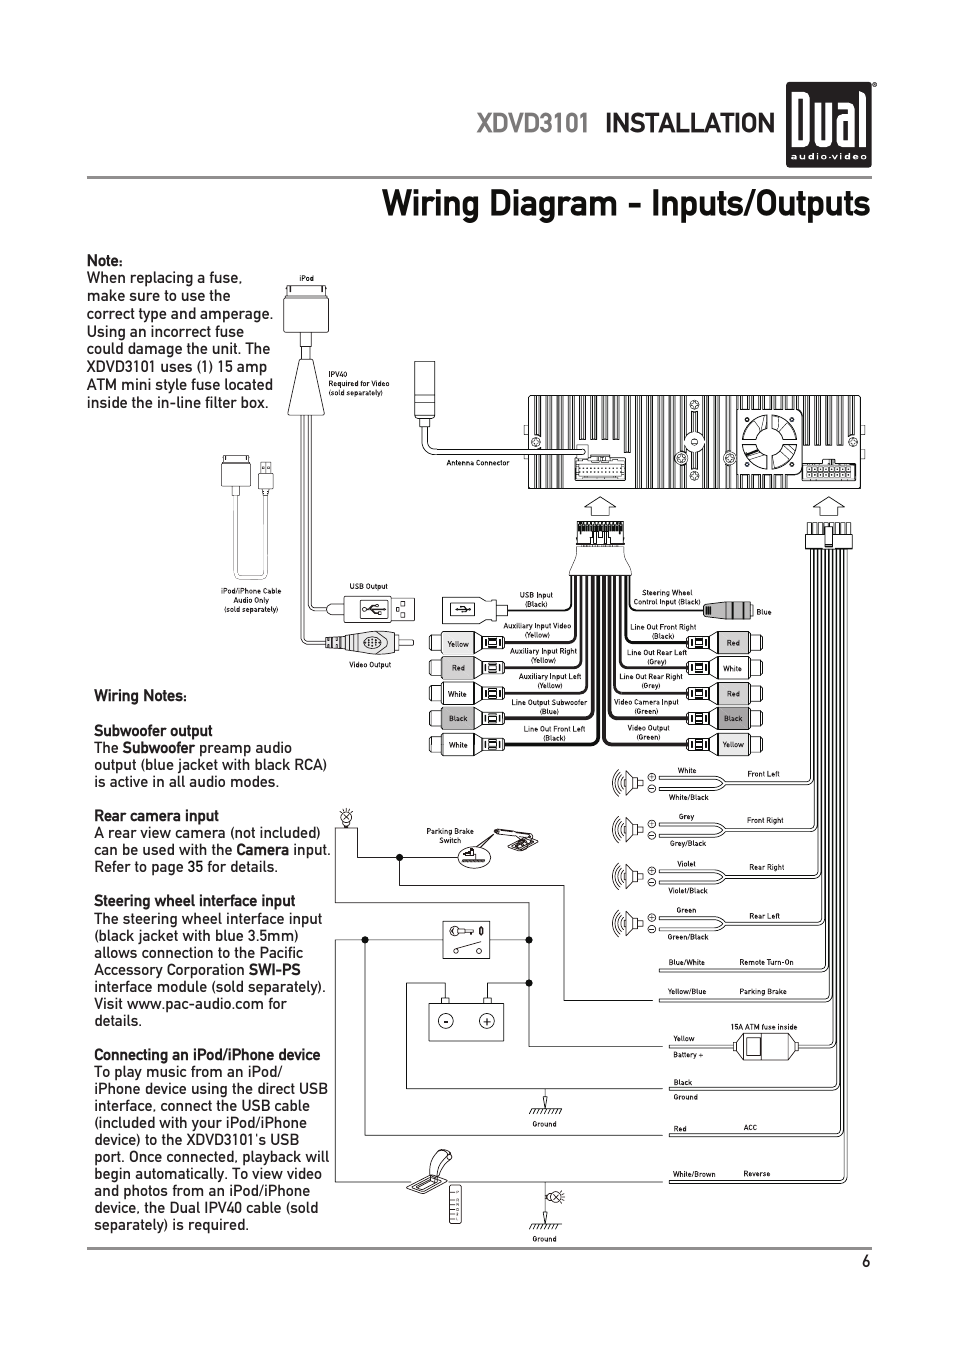 dual electronics xdvd3101 page7 wiring diagram inputs outputs, xdvd3101 installation dual pac audio tr7 wiring diagram at couponss.co